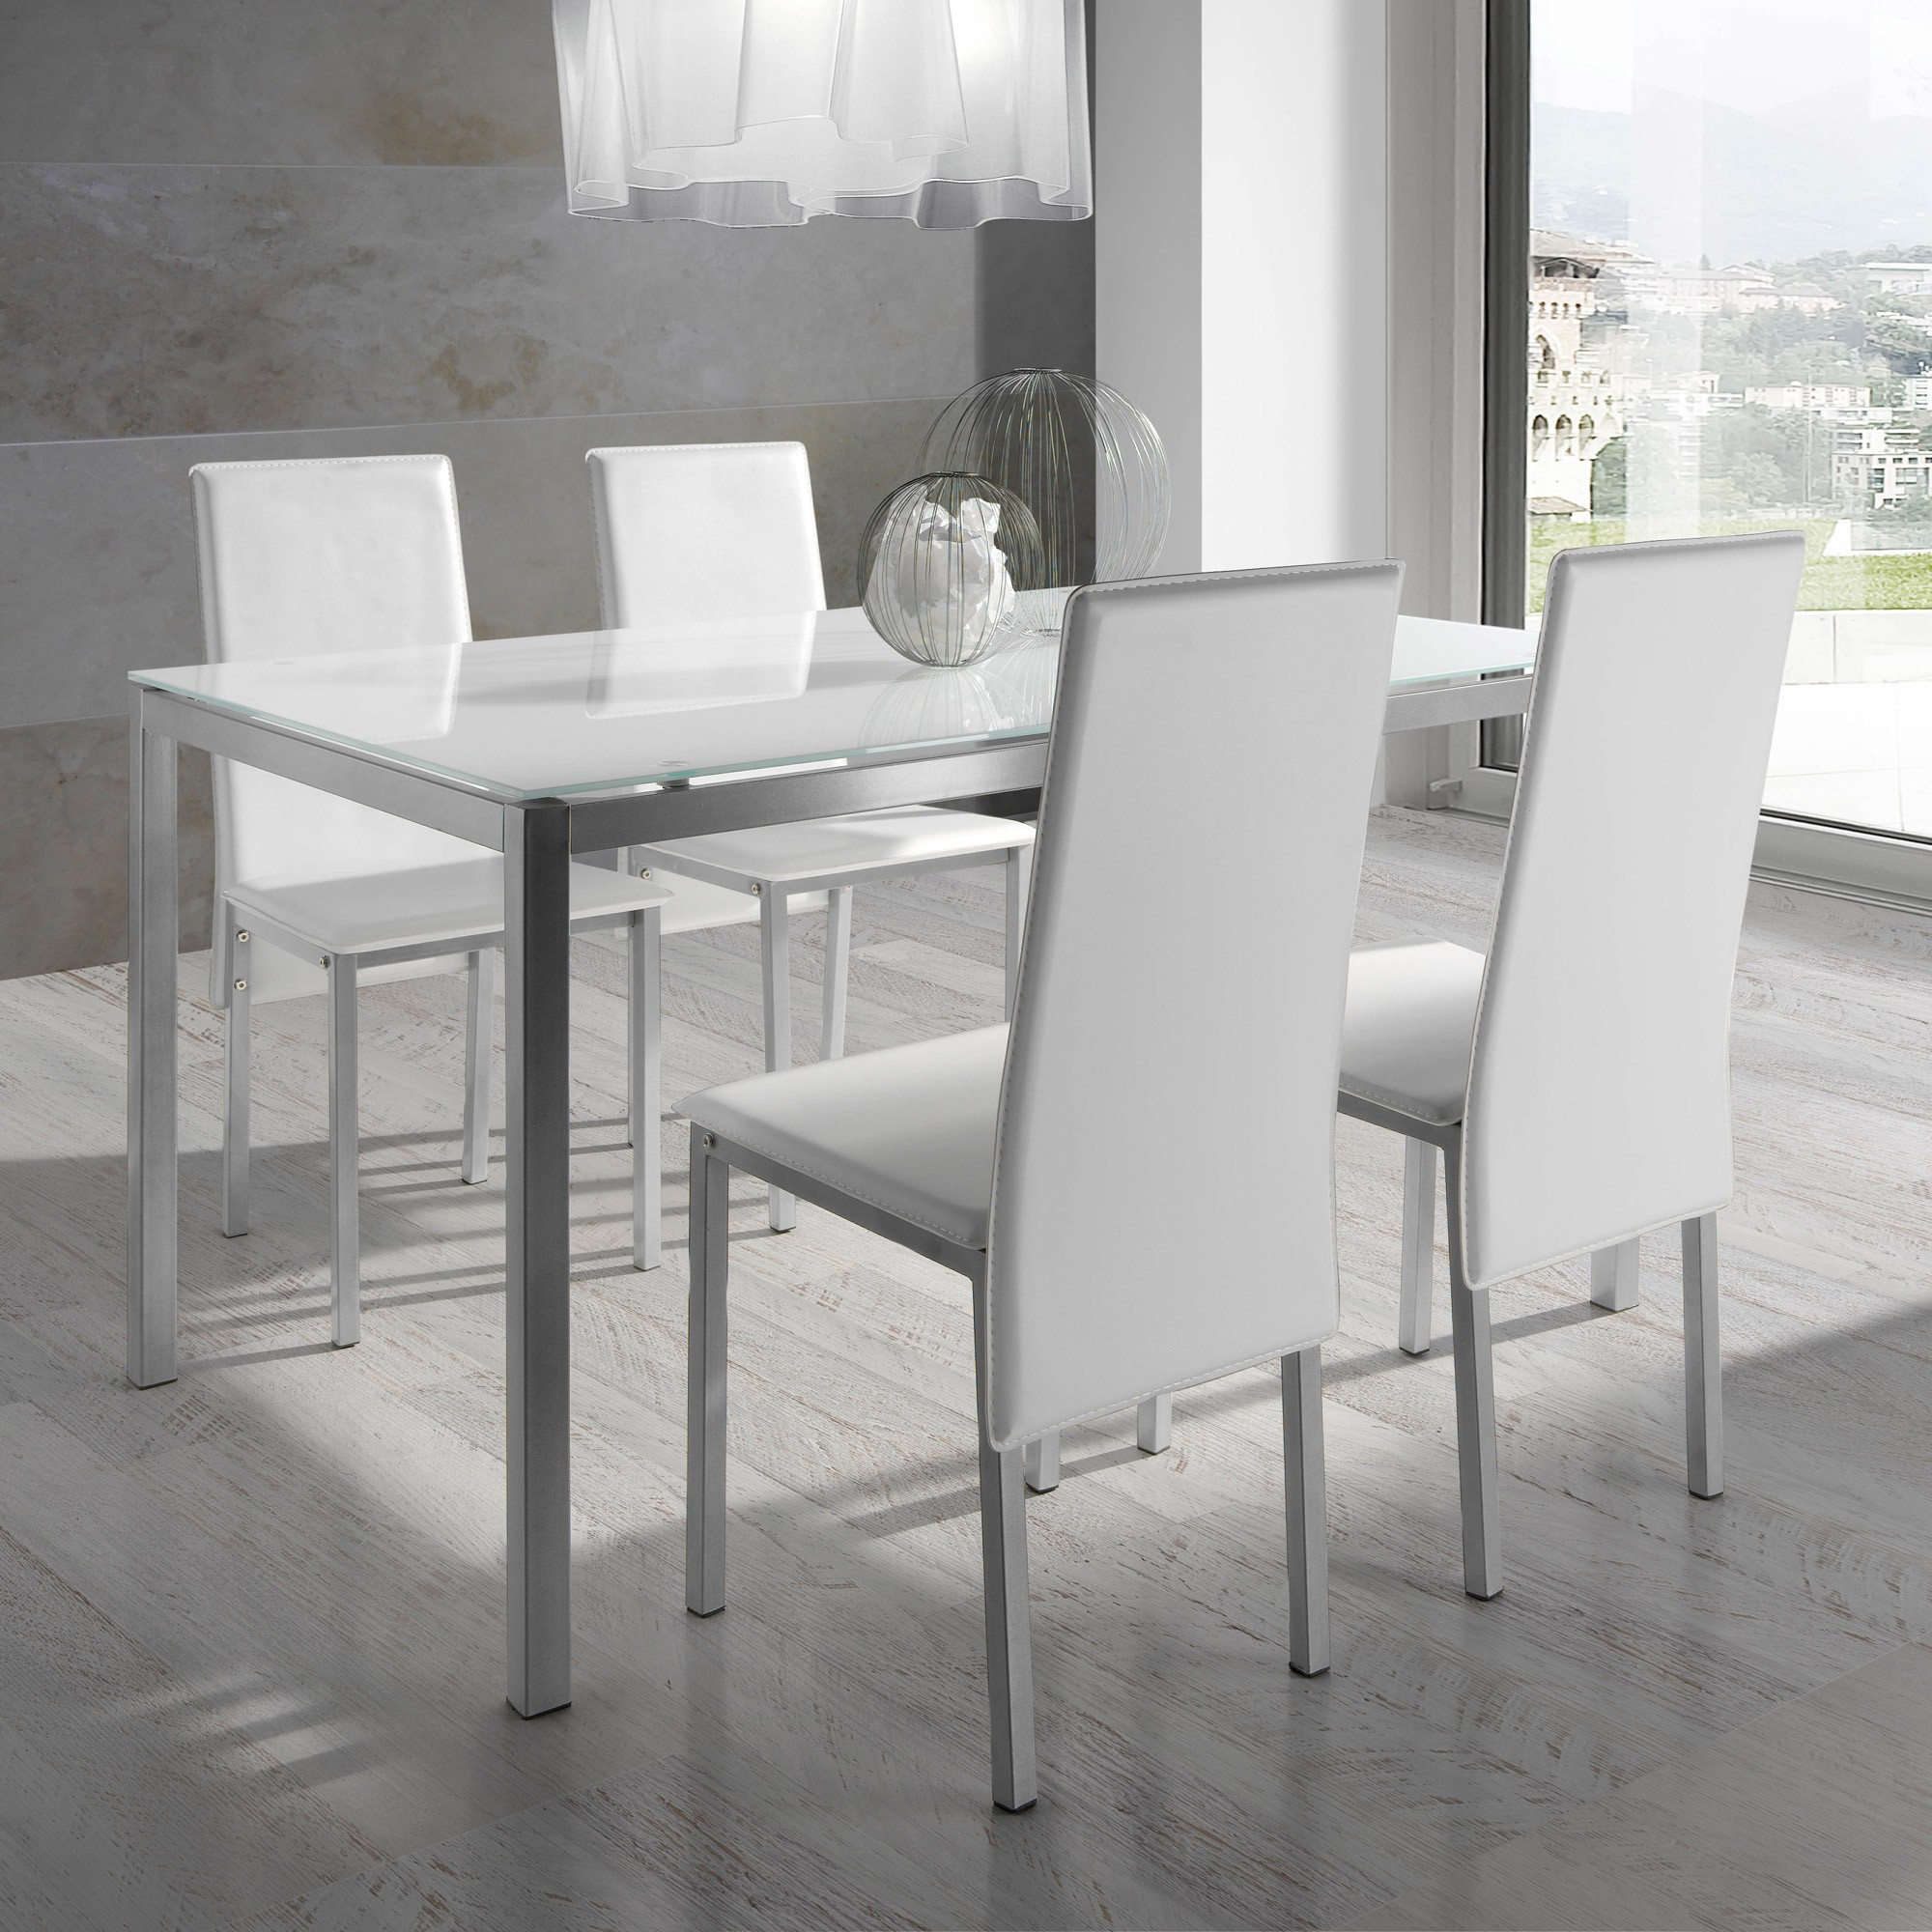 Ensemble table et chaise salle a manger but chaise for Table et chaise pour salle a manger